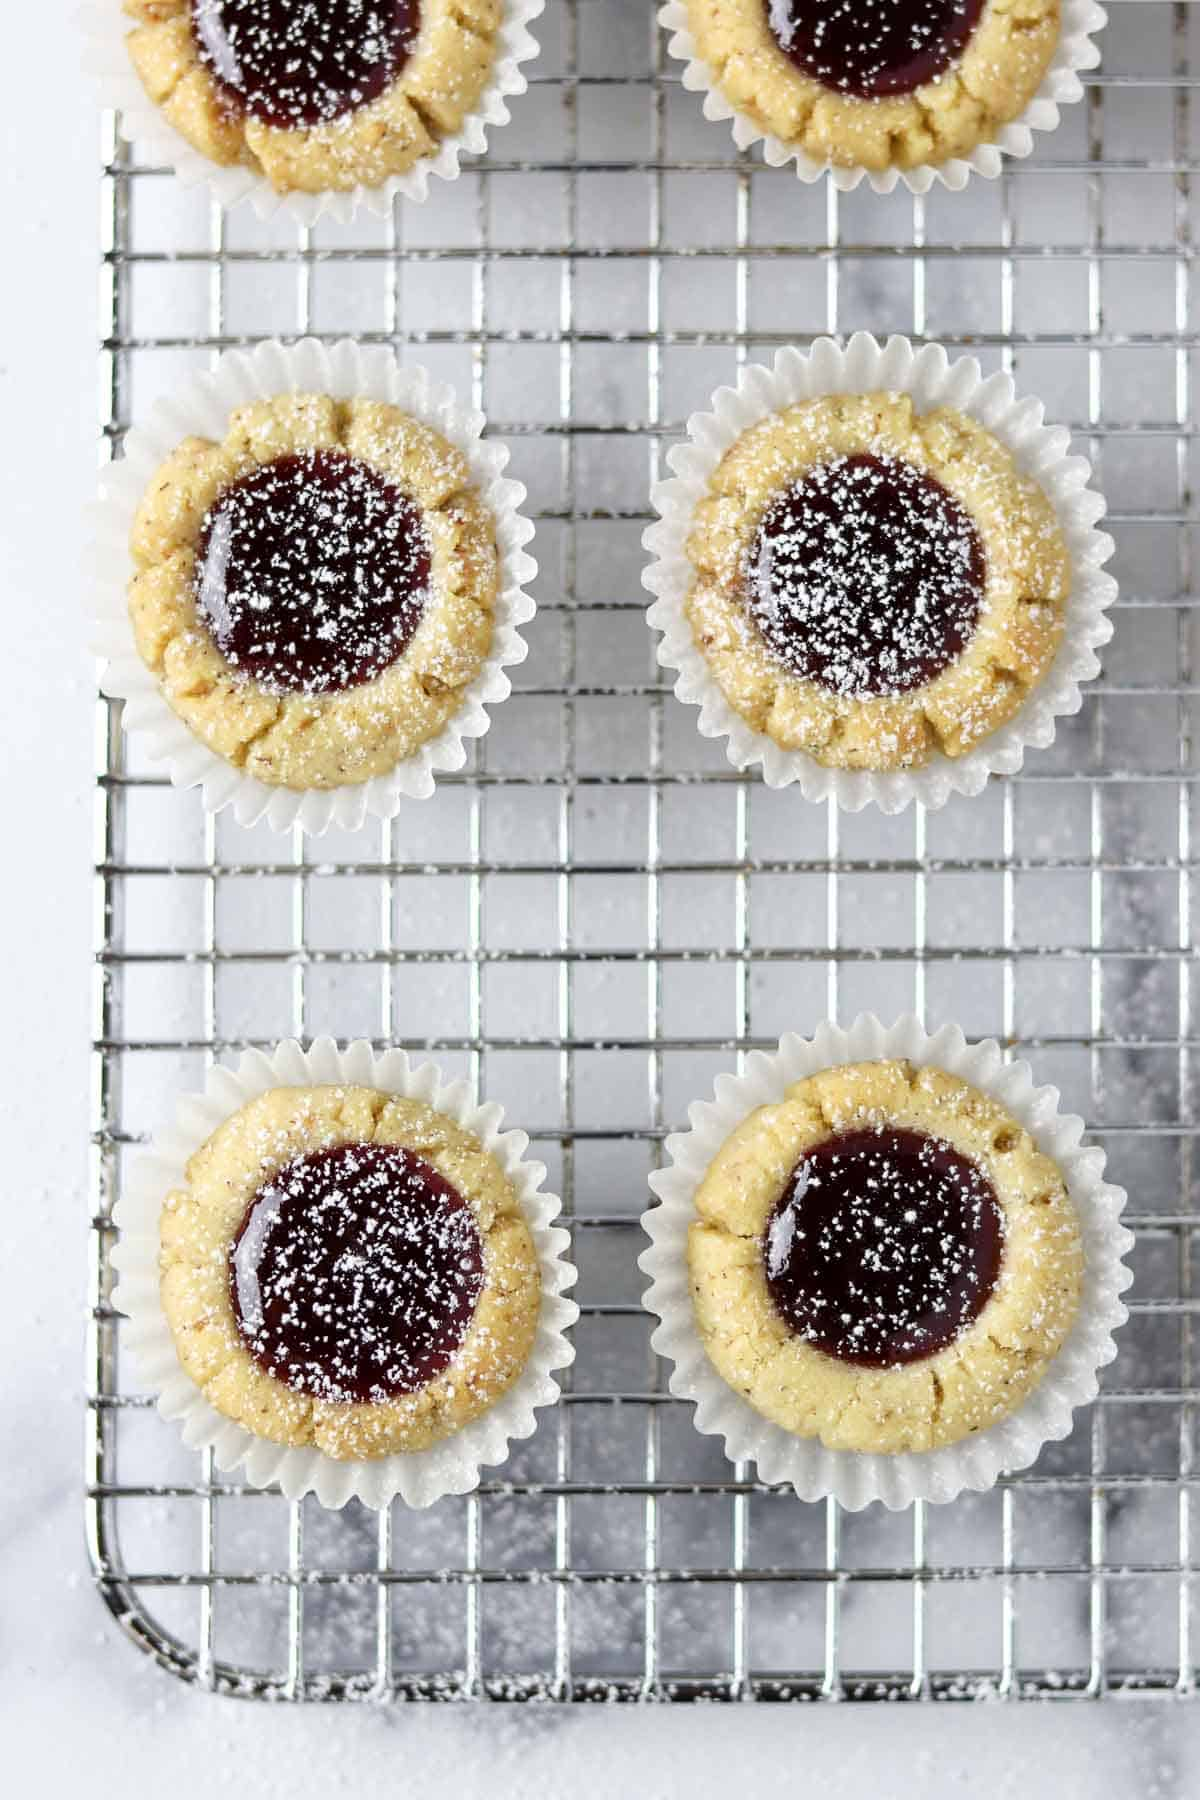 Raspberry thumbprint cookies on a cooling rack.